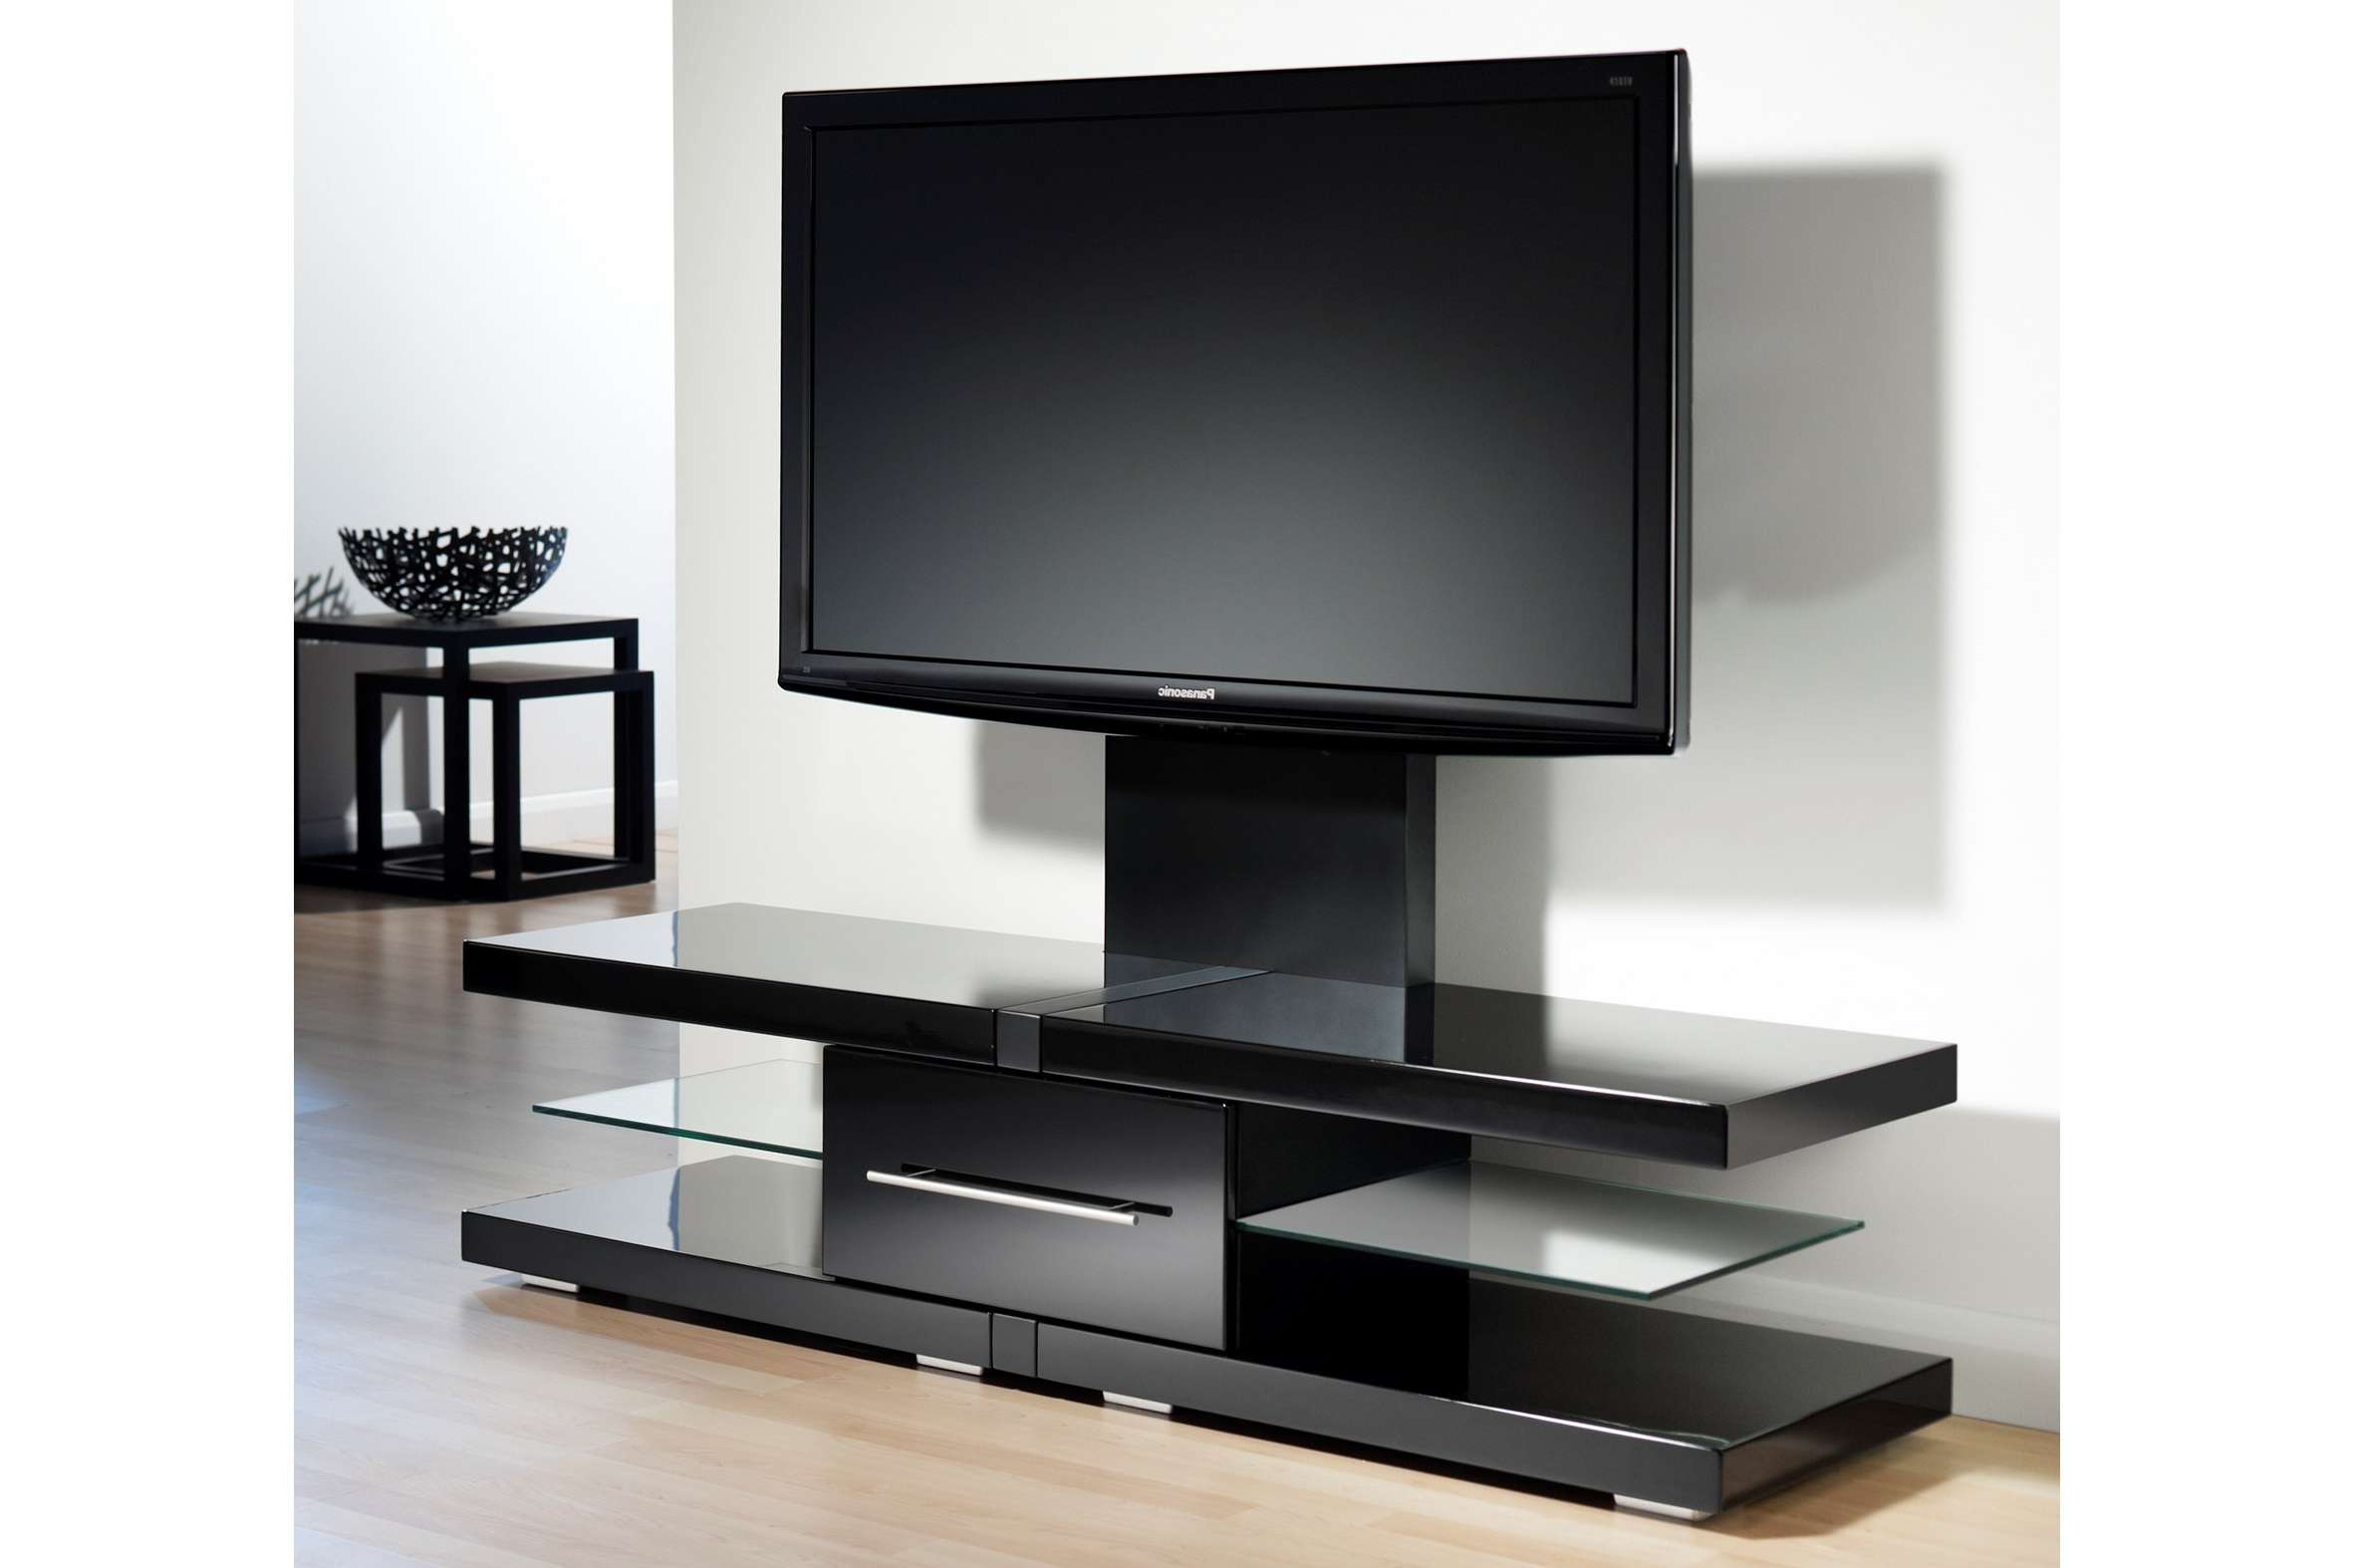 Tv Stand : 36 Sensational Tv Corner Stand With Mount Image Ideas For Corner Tv Stands With Bracket (View 13 of 20)